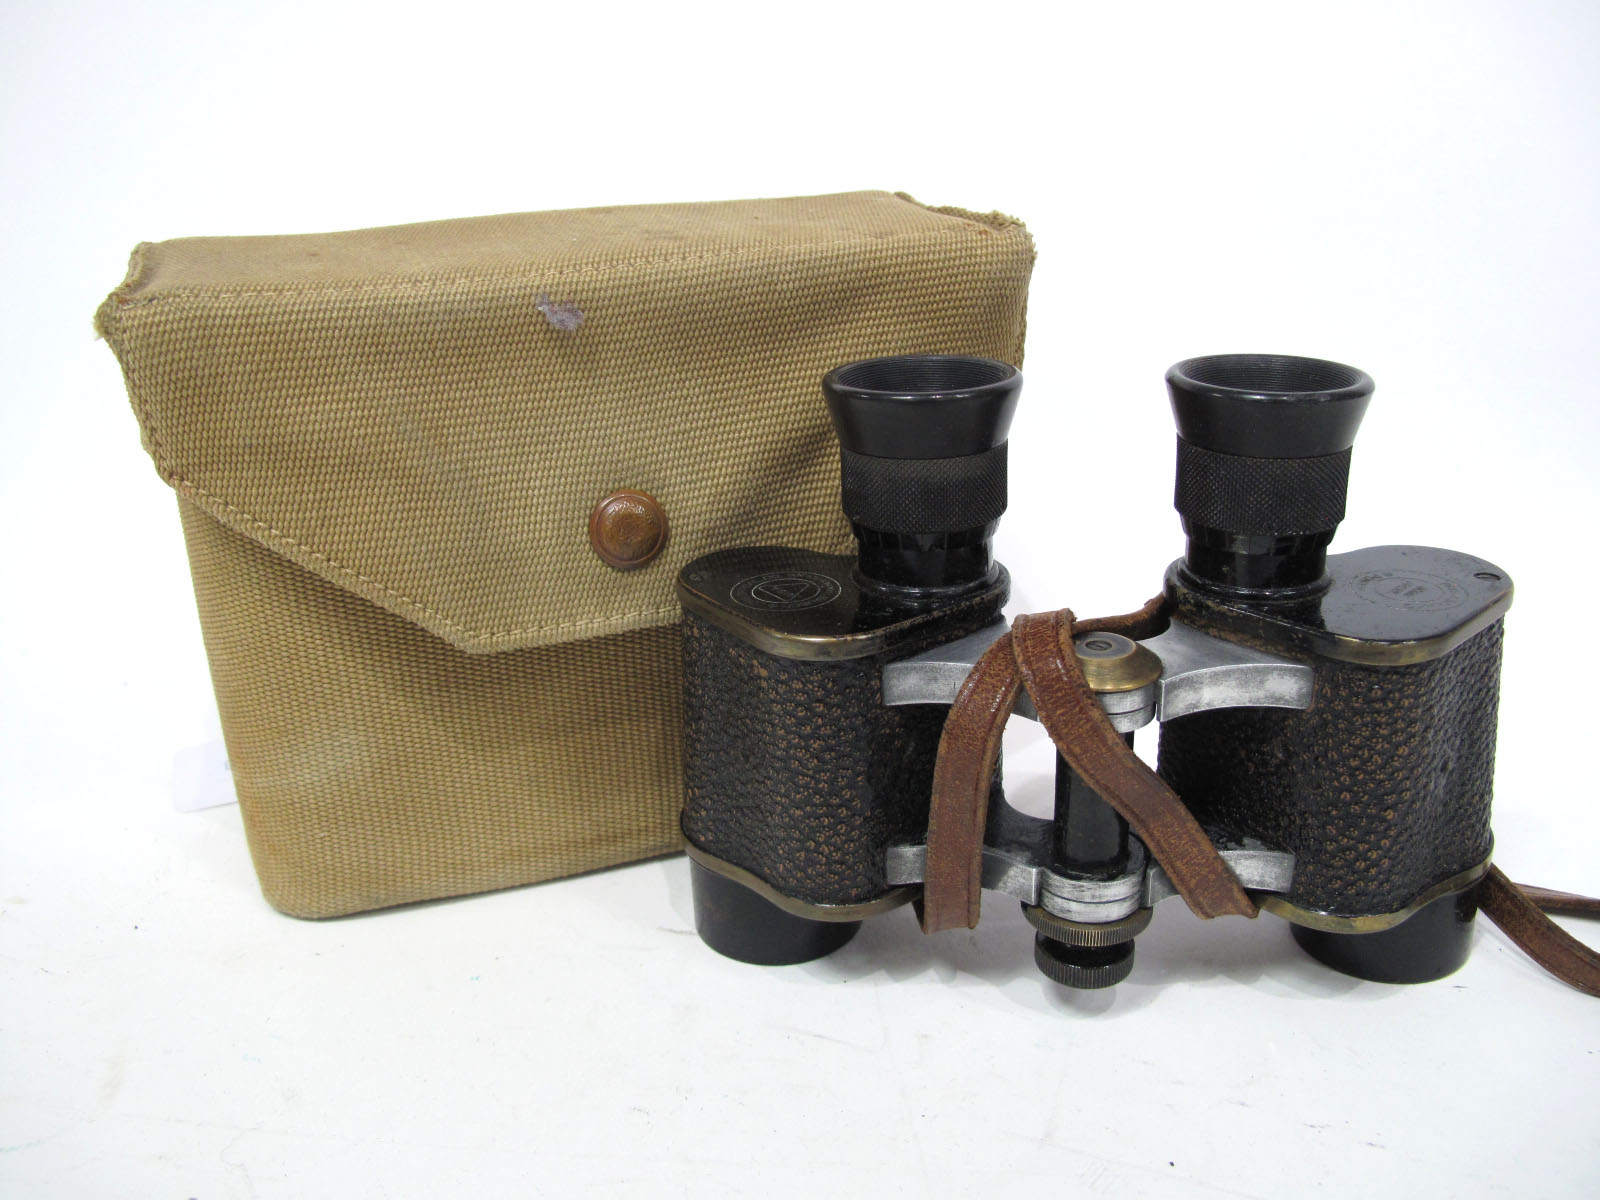 Military Binoculars US Army, Bausch and Lomb Optical Co. in canvas bag.